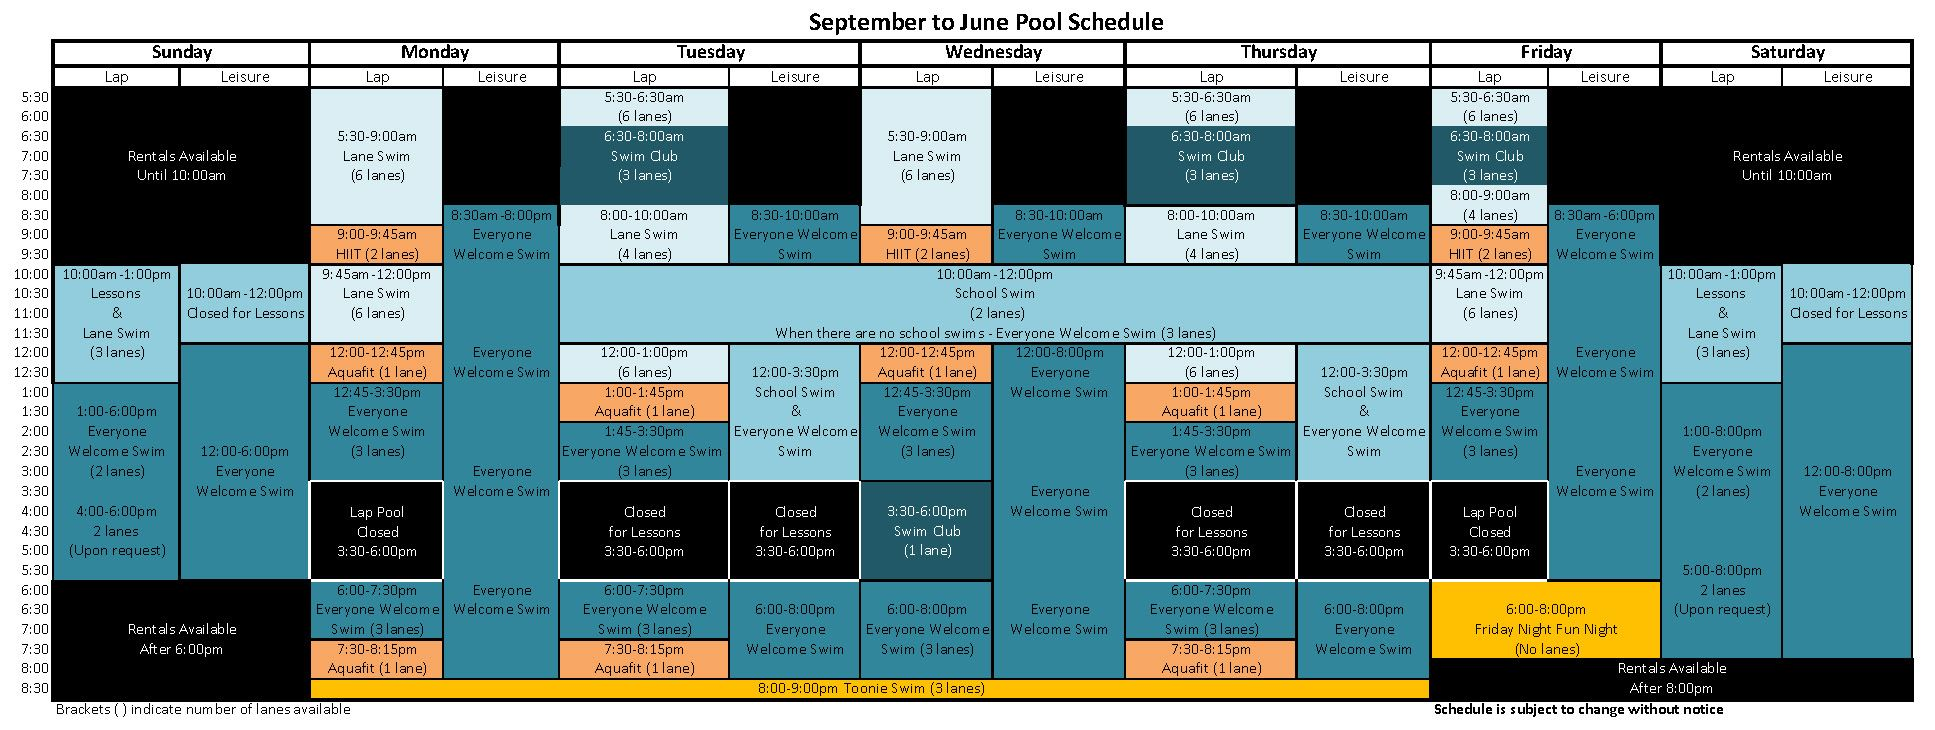 September-June Pool Schedule__FINAL